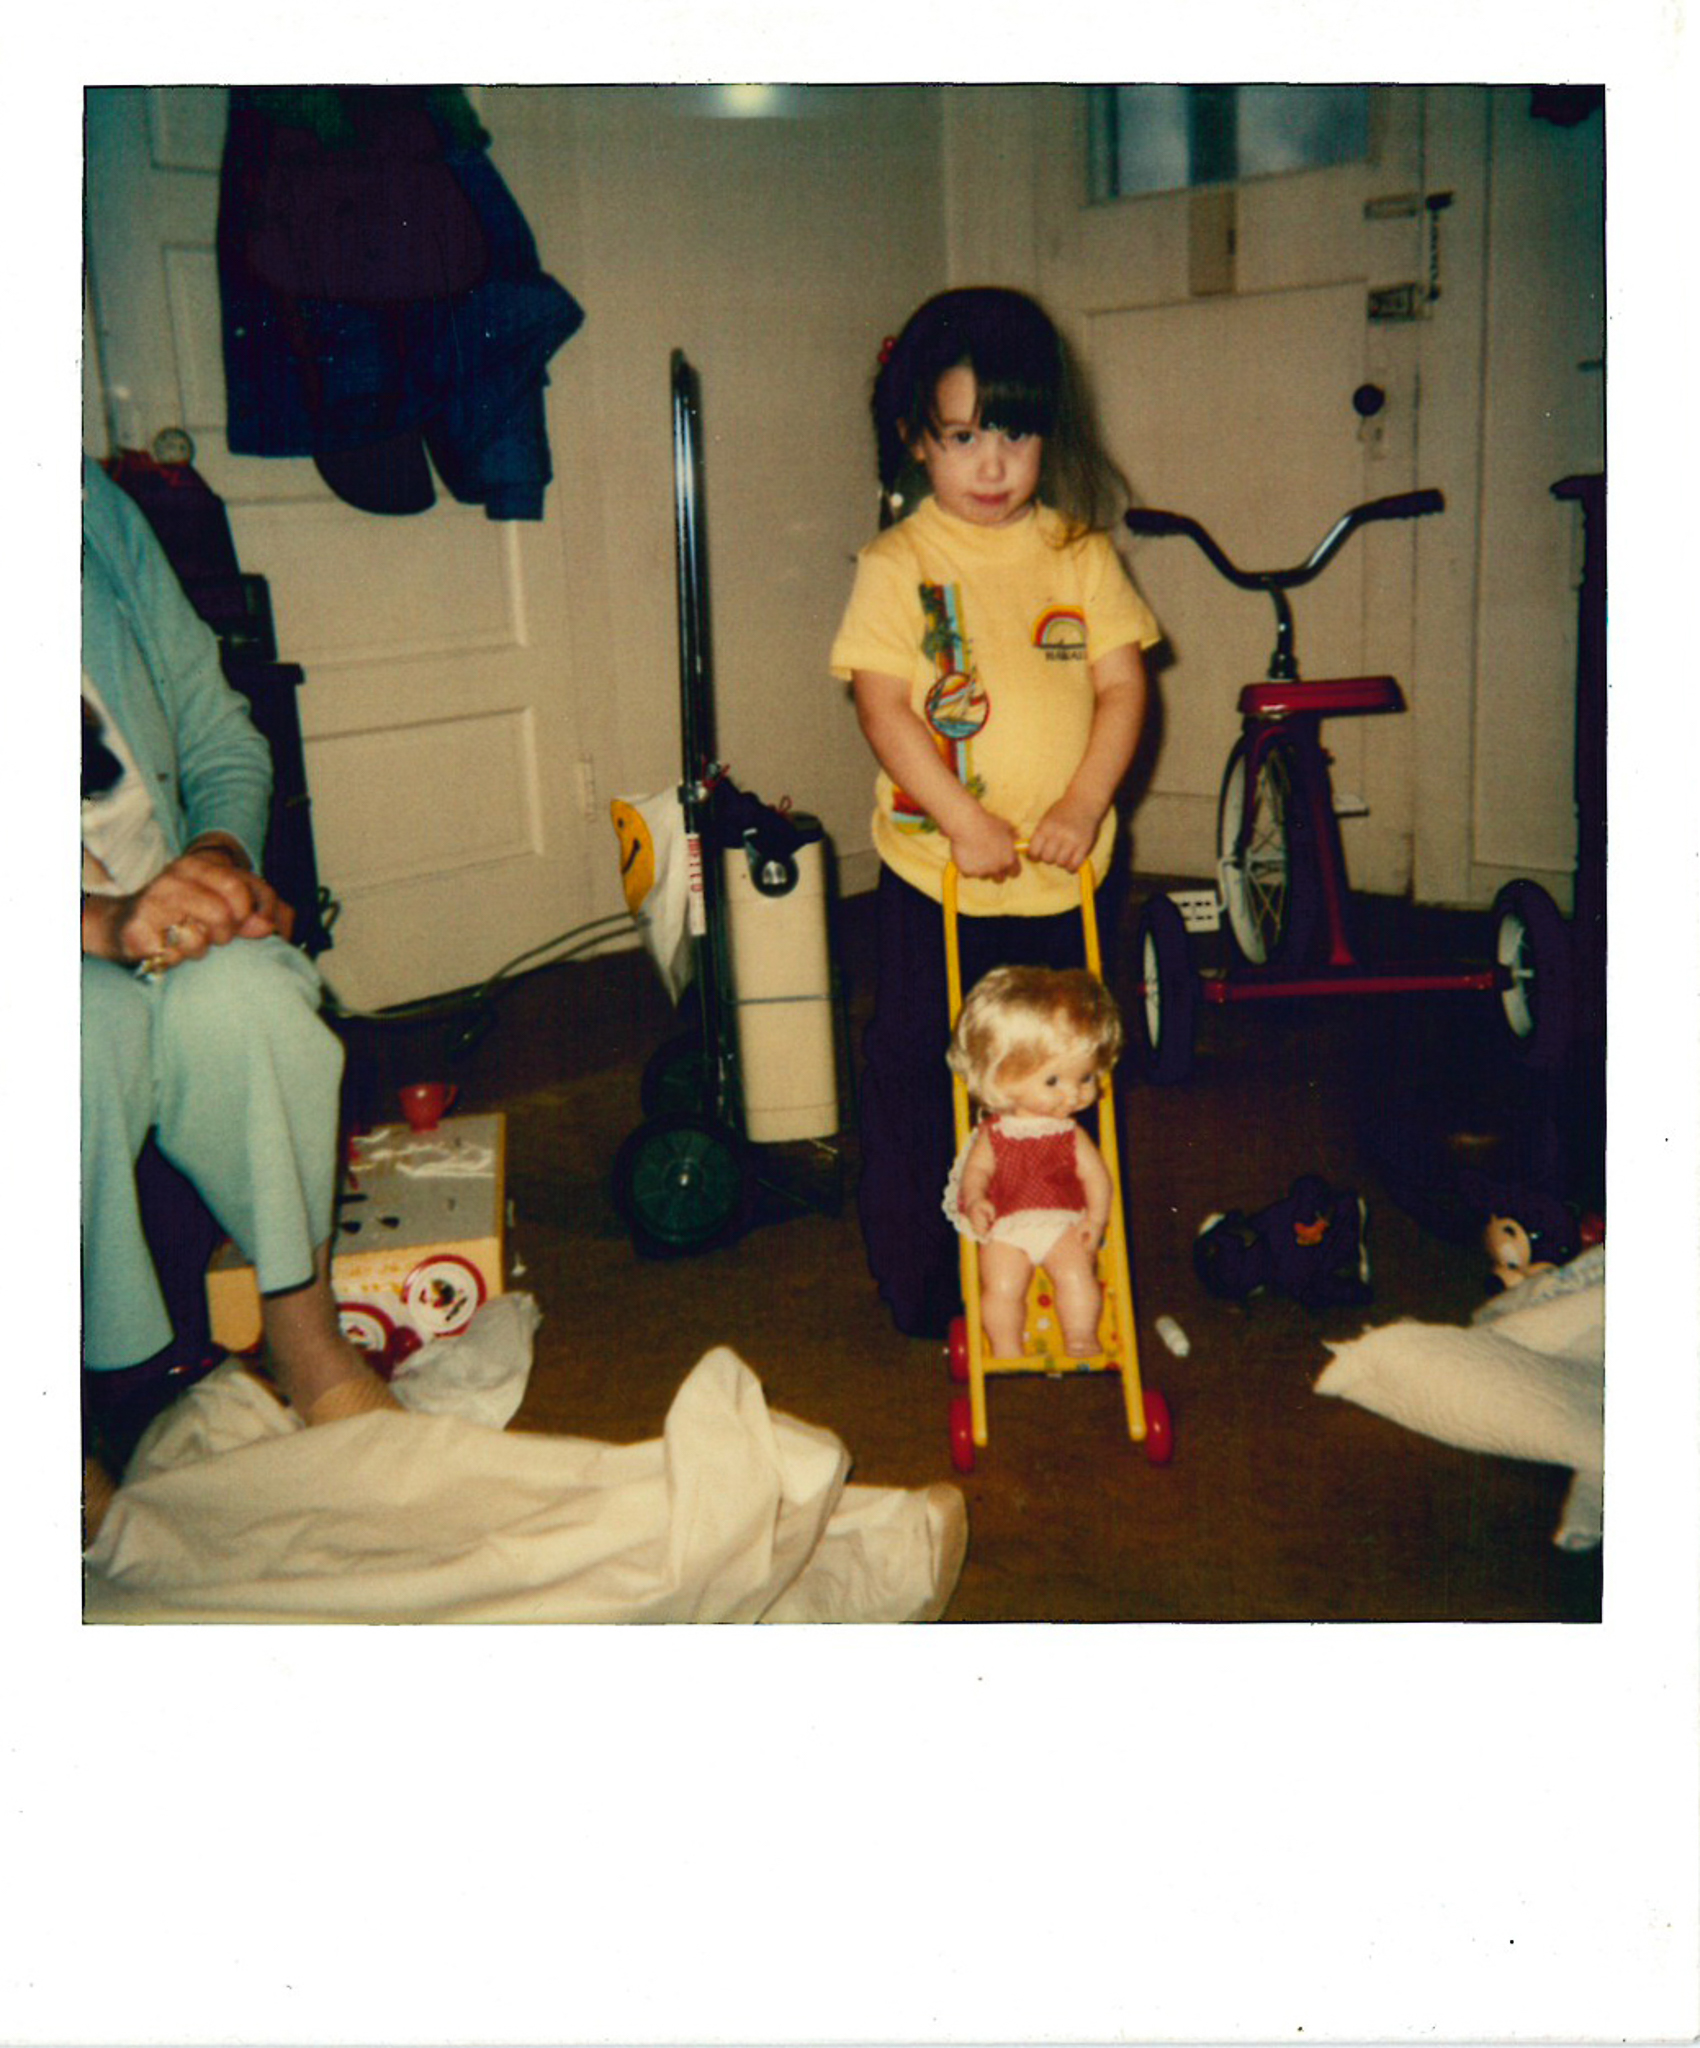 My favorite dolly and stroller. This was taken in a home we moved out of when I was around 6 years old. I love looking back at remembering that old house.